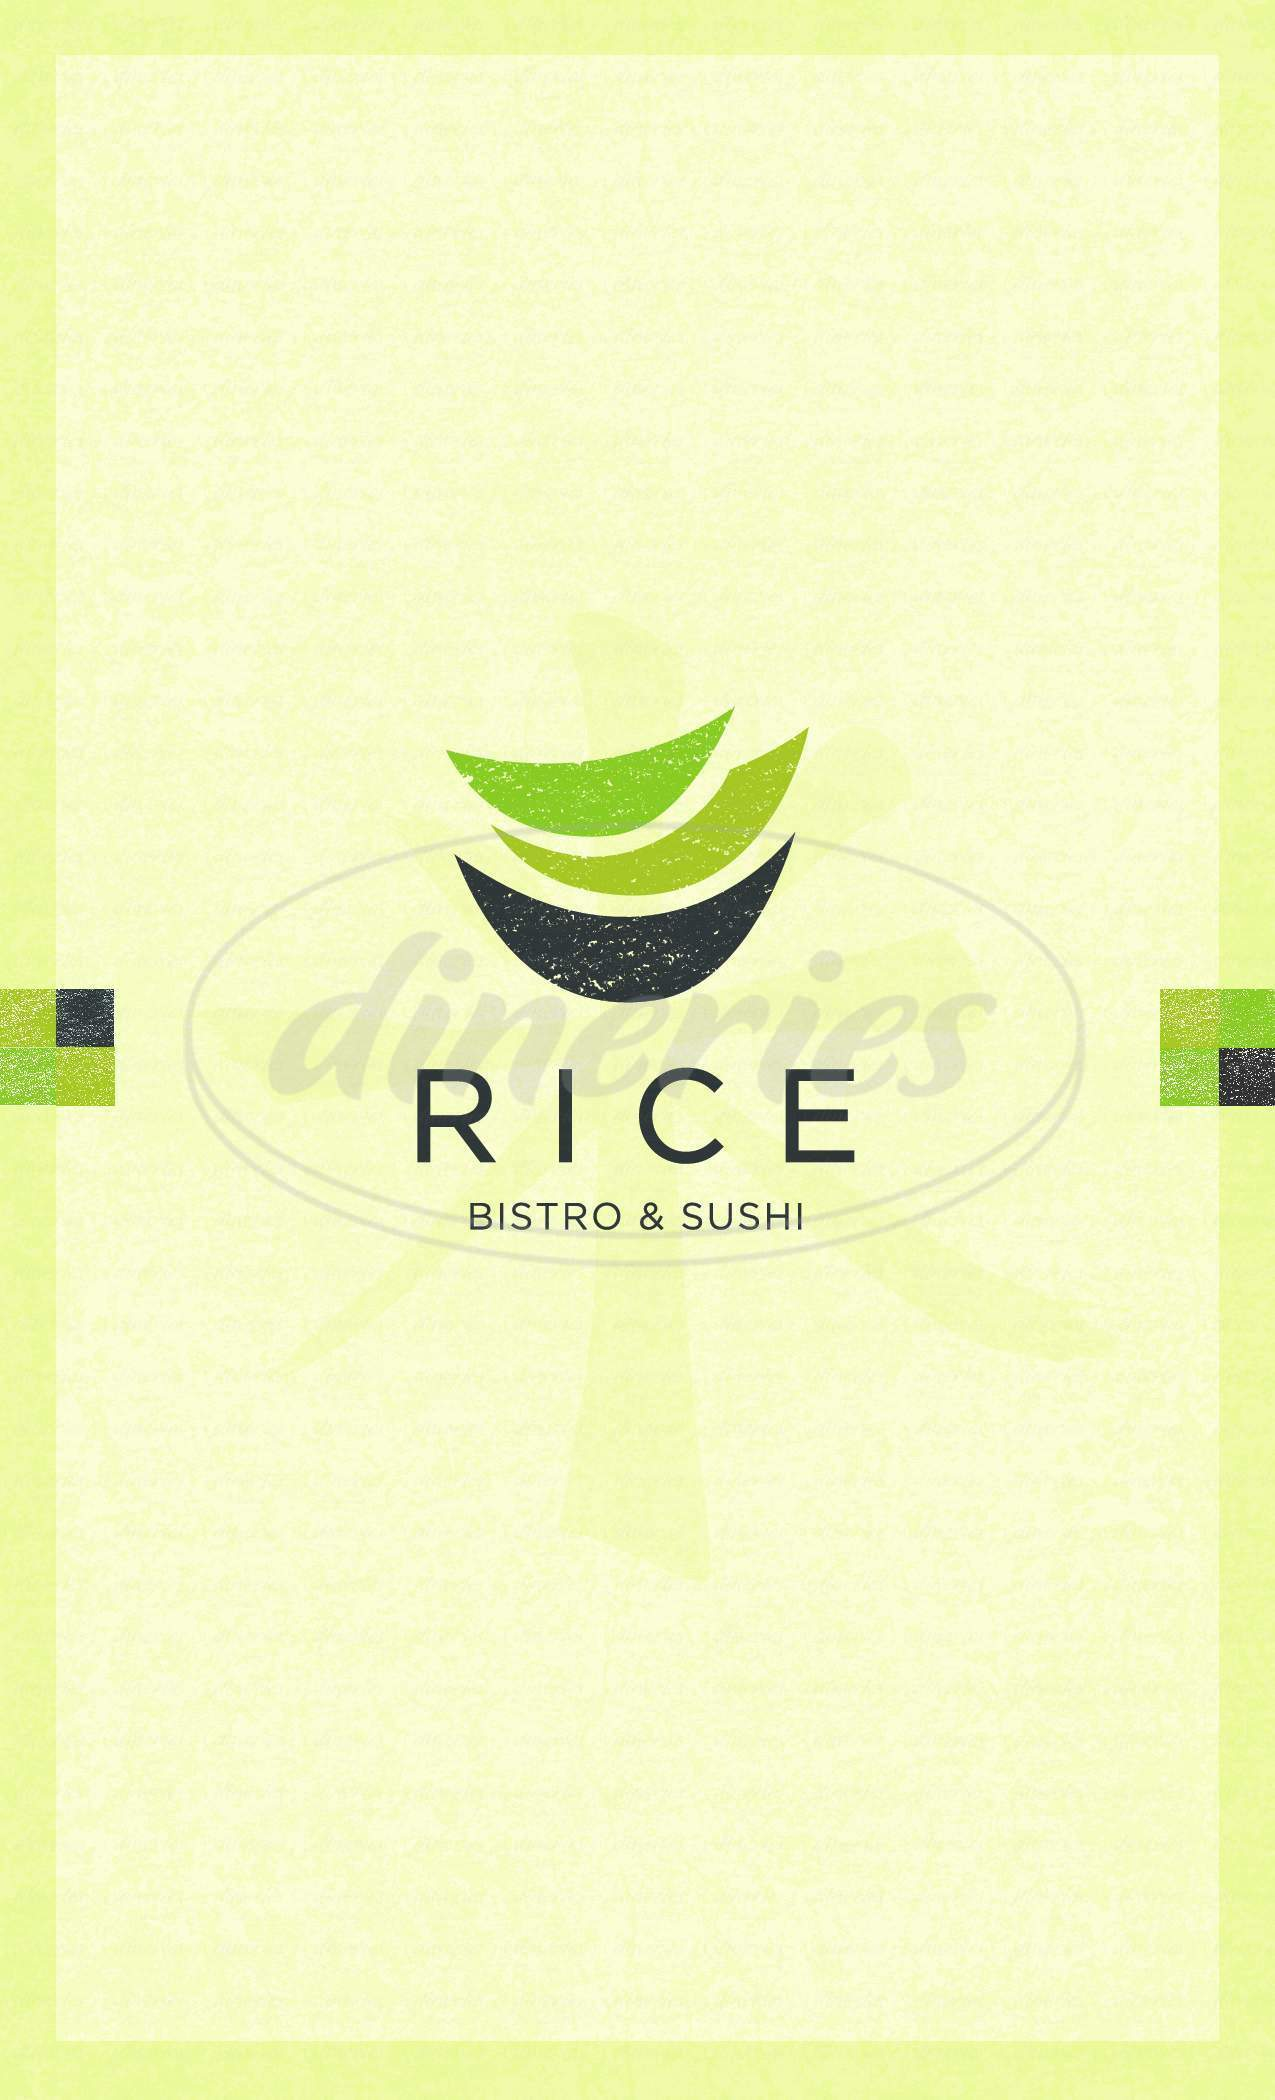 menu for Rice Bistro & Sushi